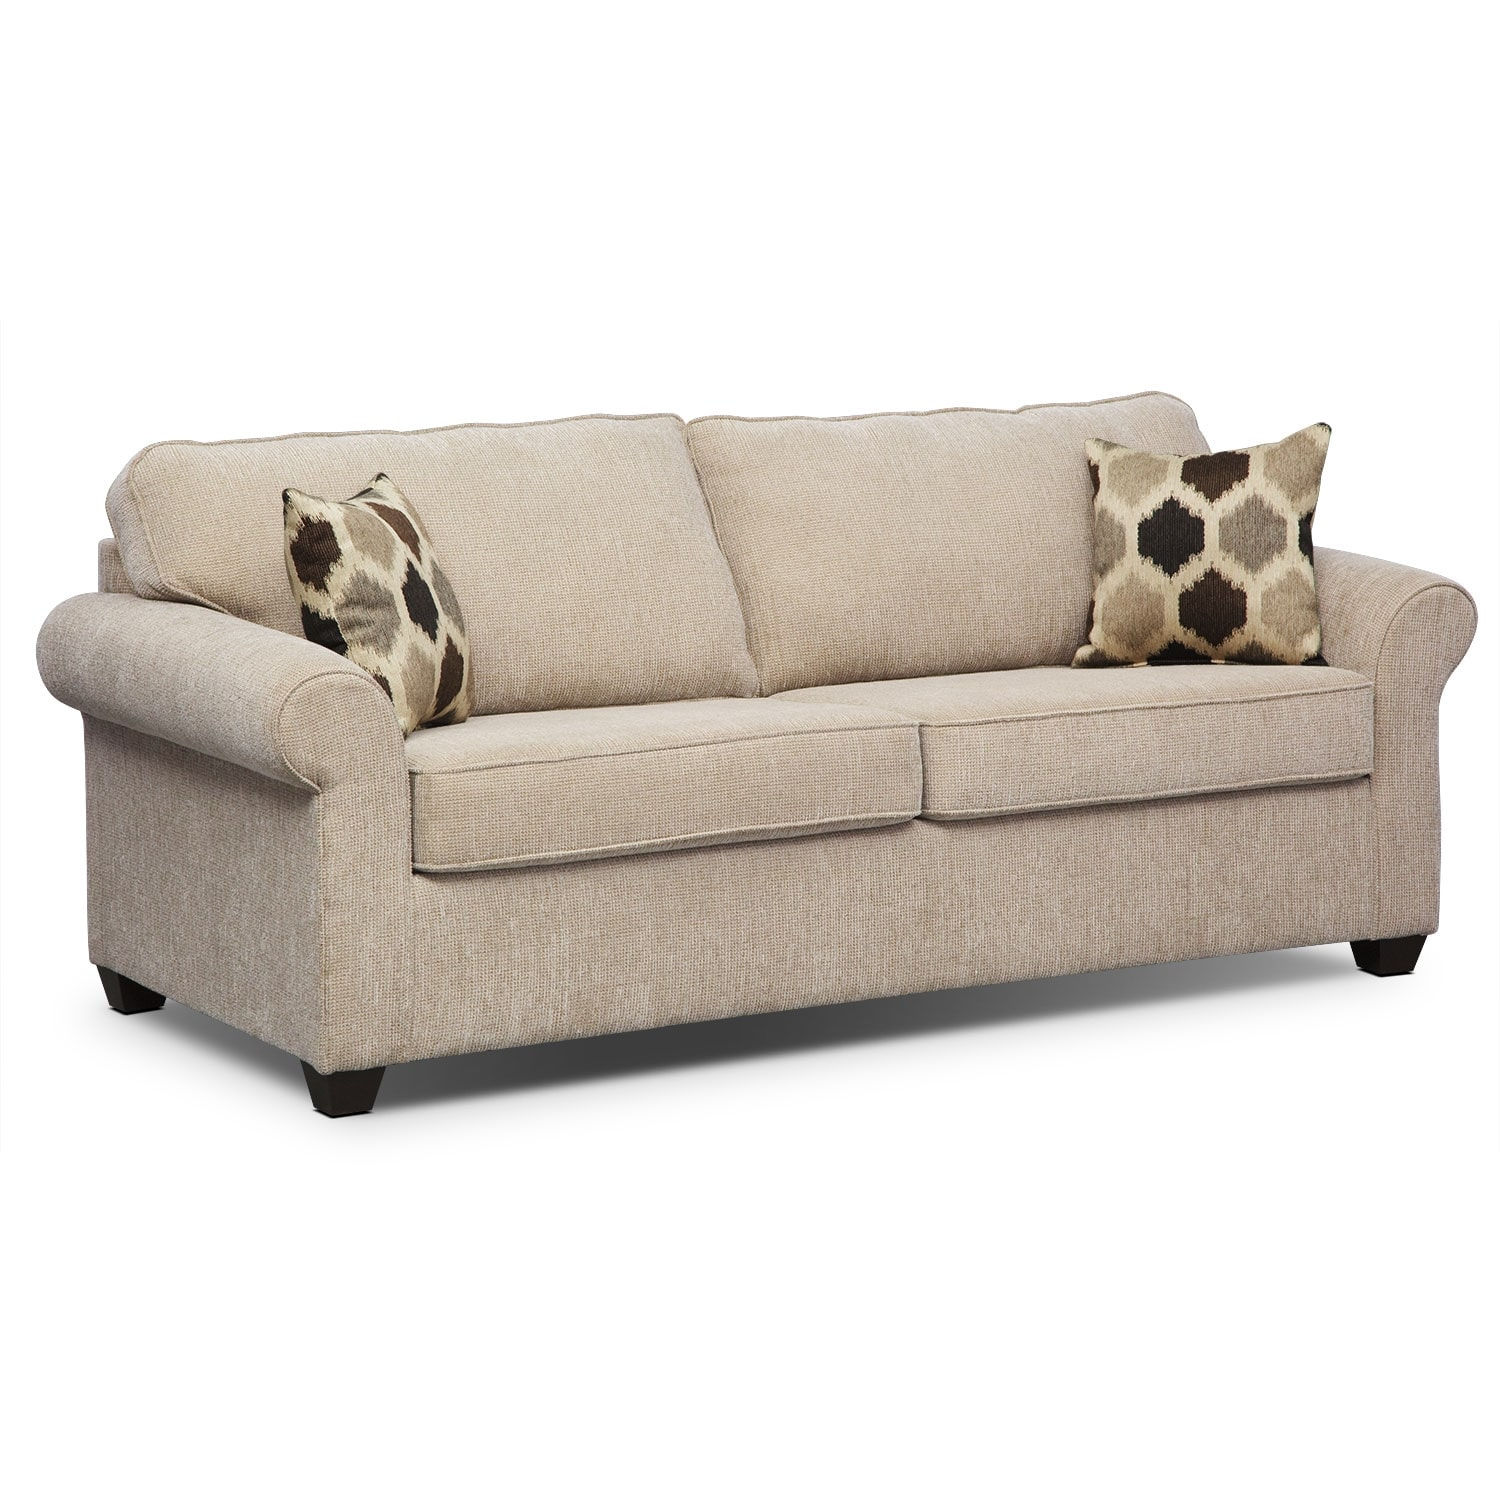 Living Room Furniture - Fletcher Queen Memory Foam Sleeper Sofa